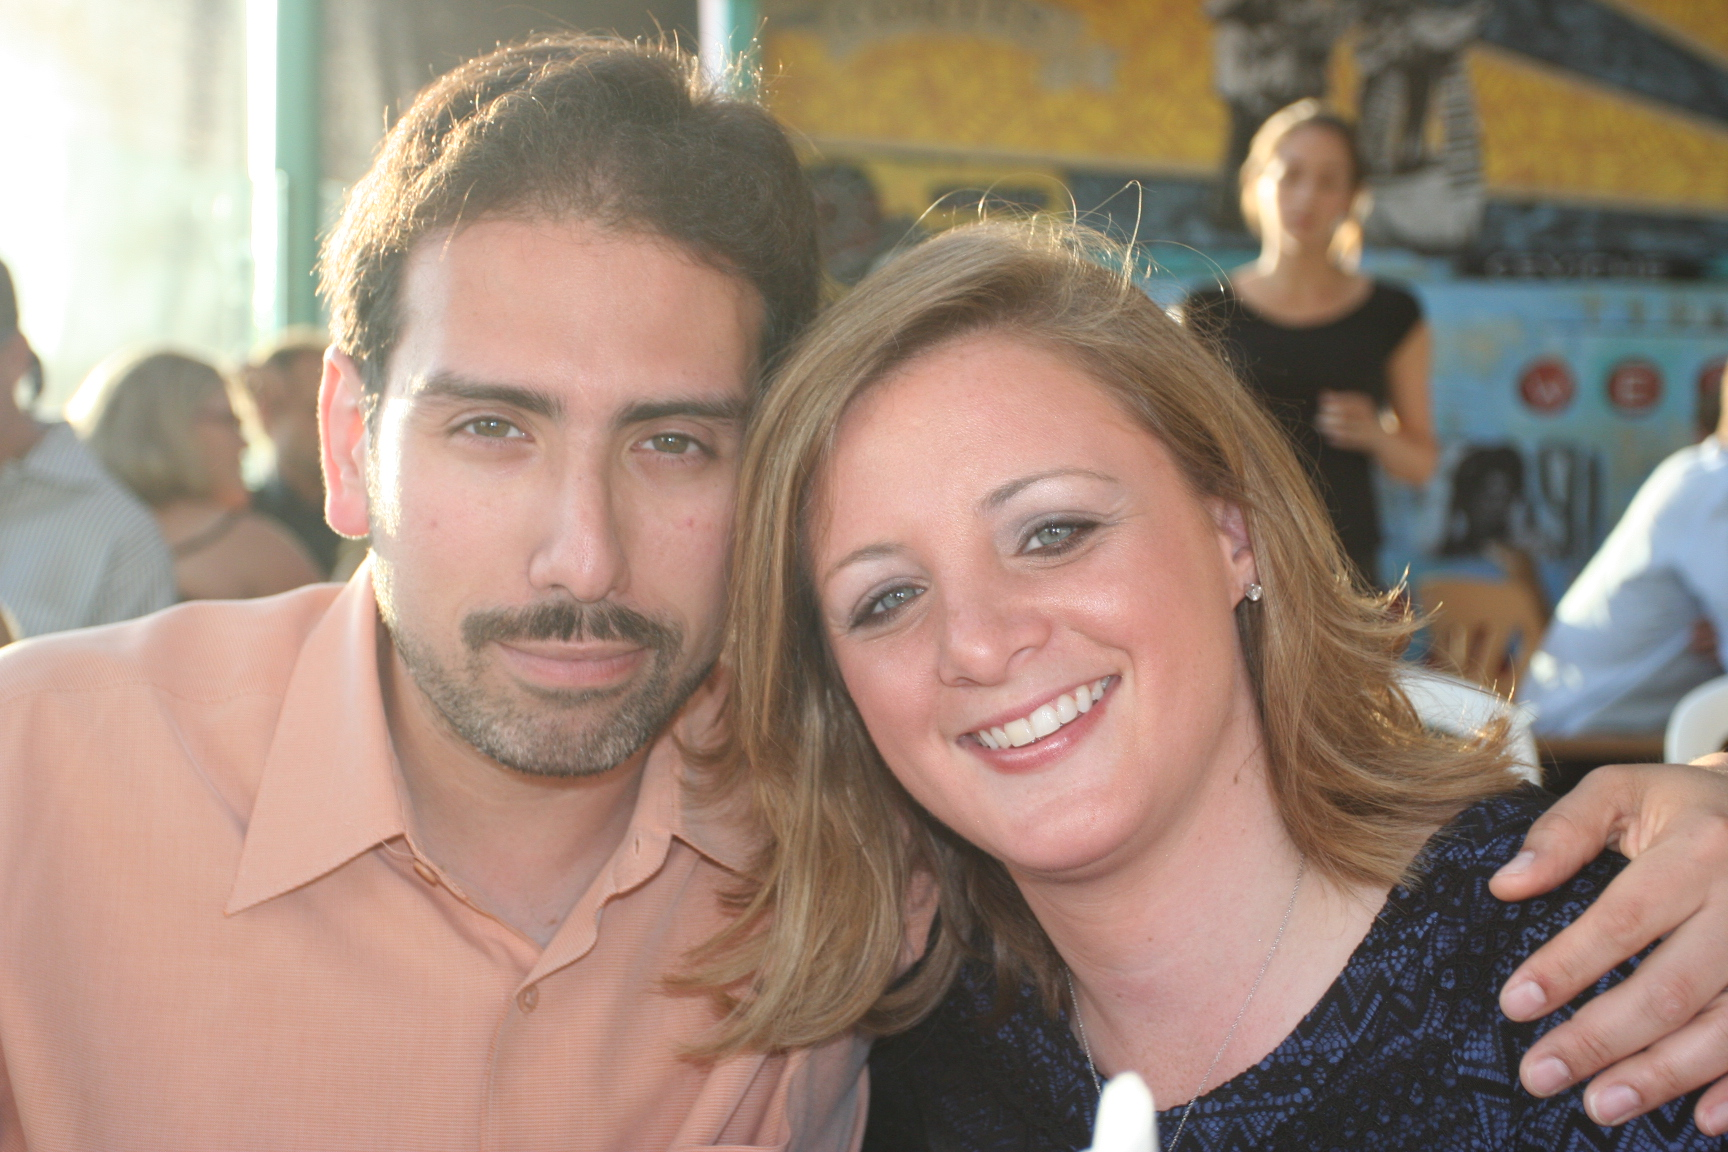 Randi Belisomo and her late husband Carlos, who died in 2010 from colon cancer.